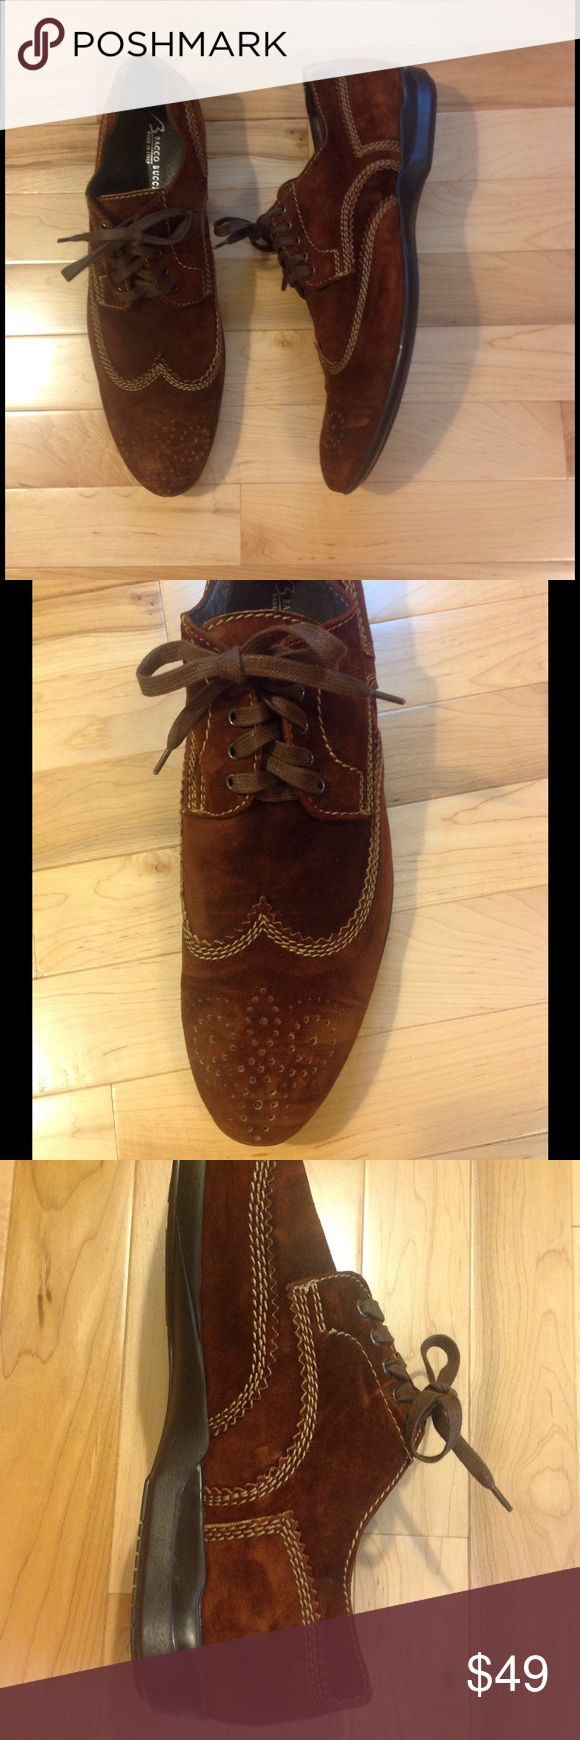 Bacco Bucci men's suede wingtip 11.5 Like new pair of men's casual suede wingtips from Bacco Bucci. The color is a rich tobacco (reddish brown) with contrast stitching - very striking combination. The sole is more like a loafer than a dress shoe so definitely a casual look, but they would really dress up a pair of jeans! Worn only a couple of times and still in excellent condition. Quality materials and craftsmanship that will last a very long time. Really beautiful - would look even better…